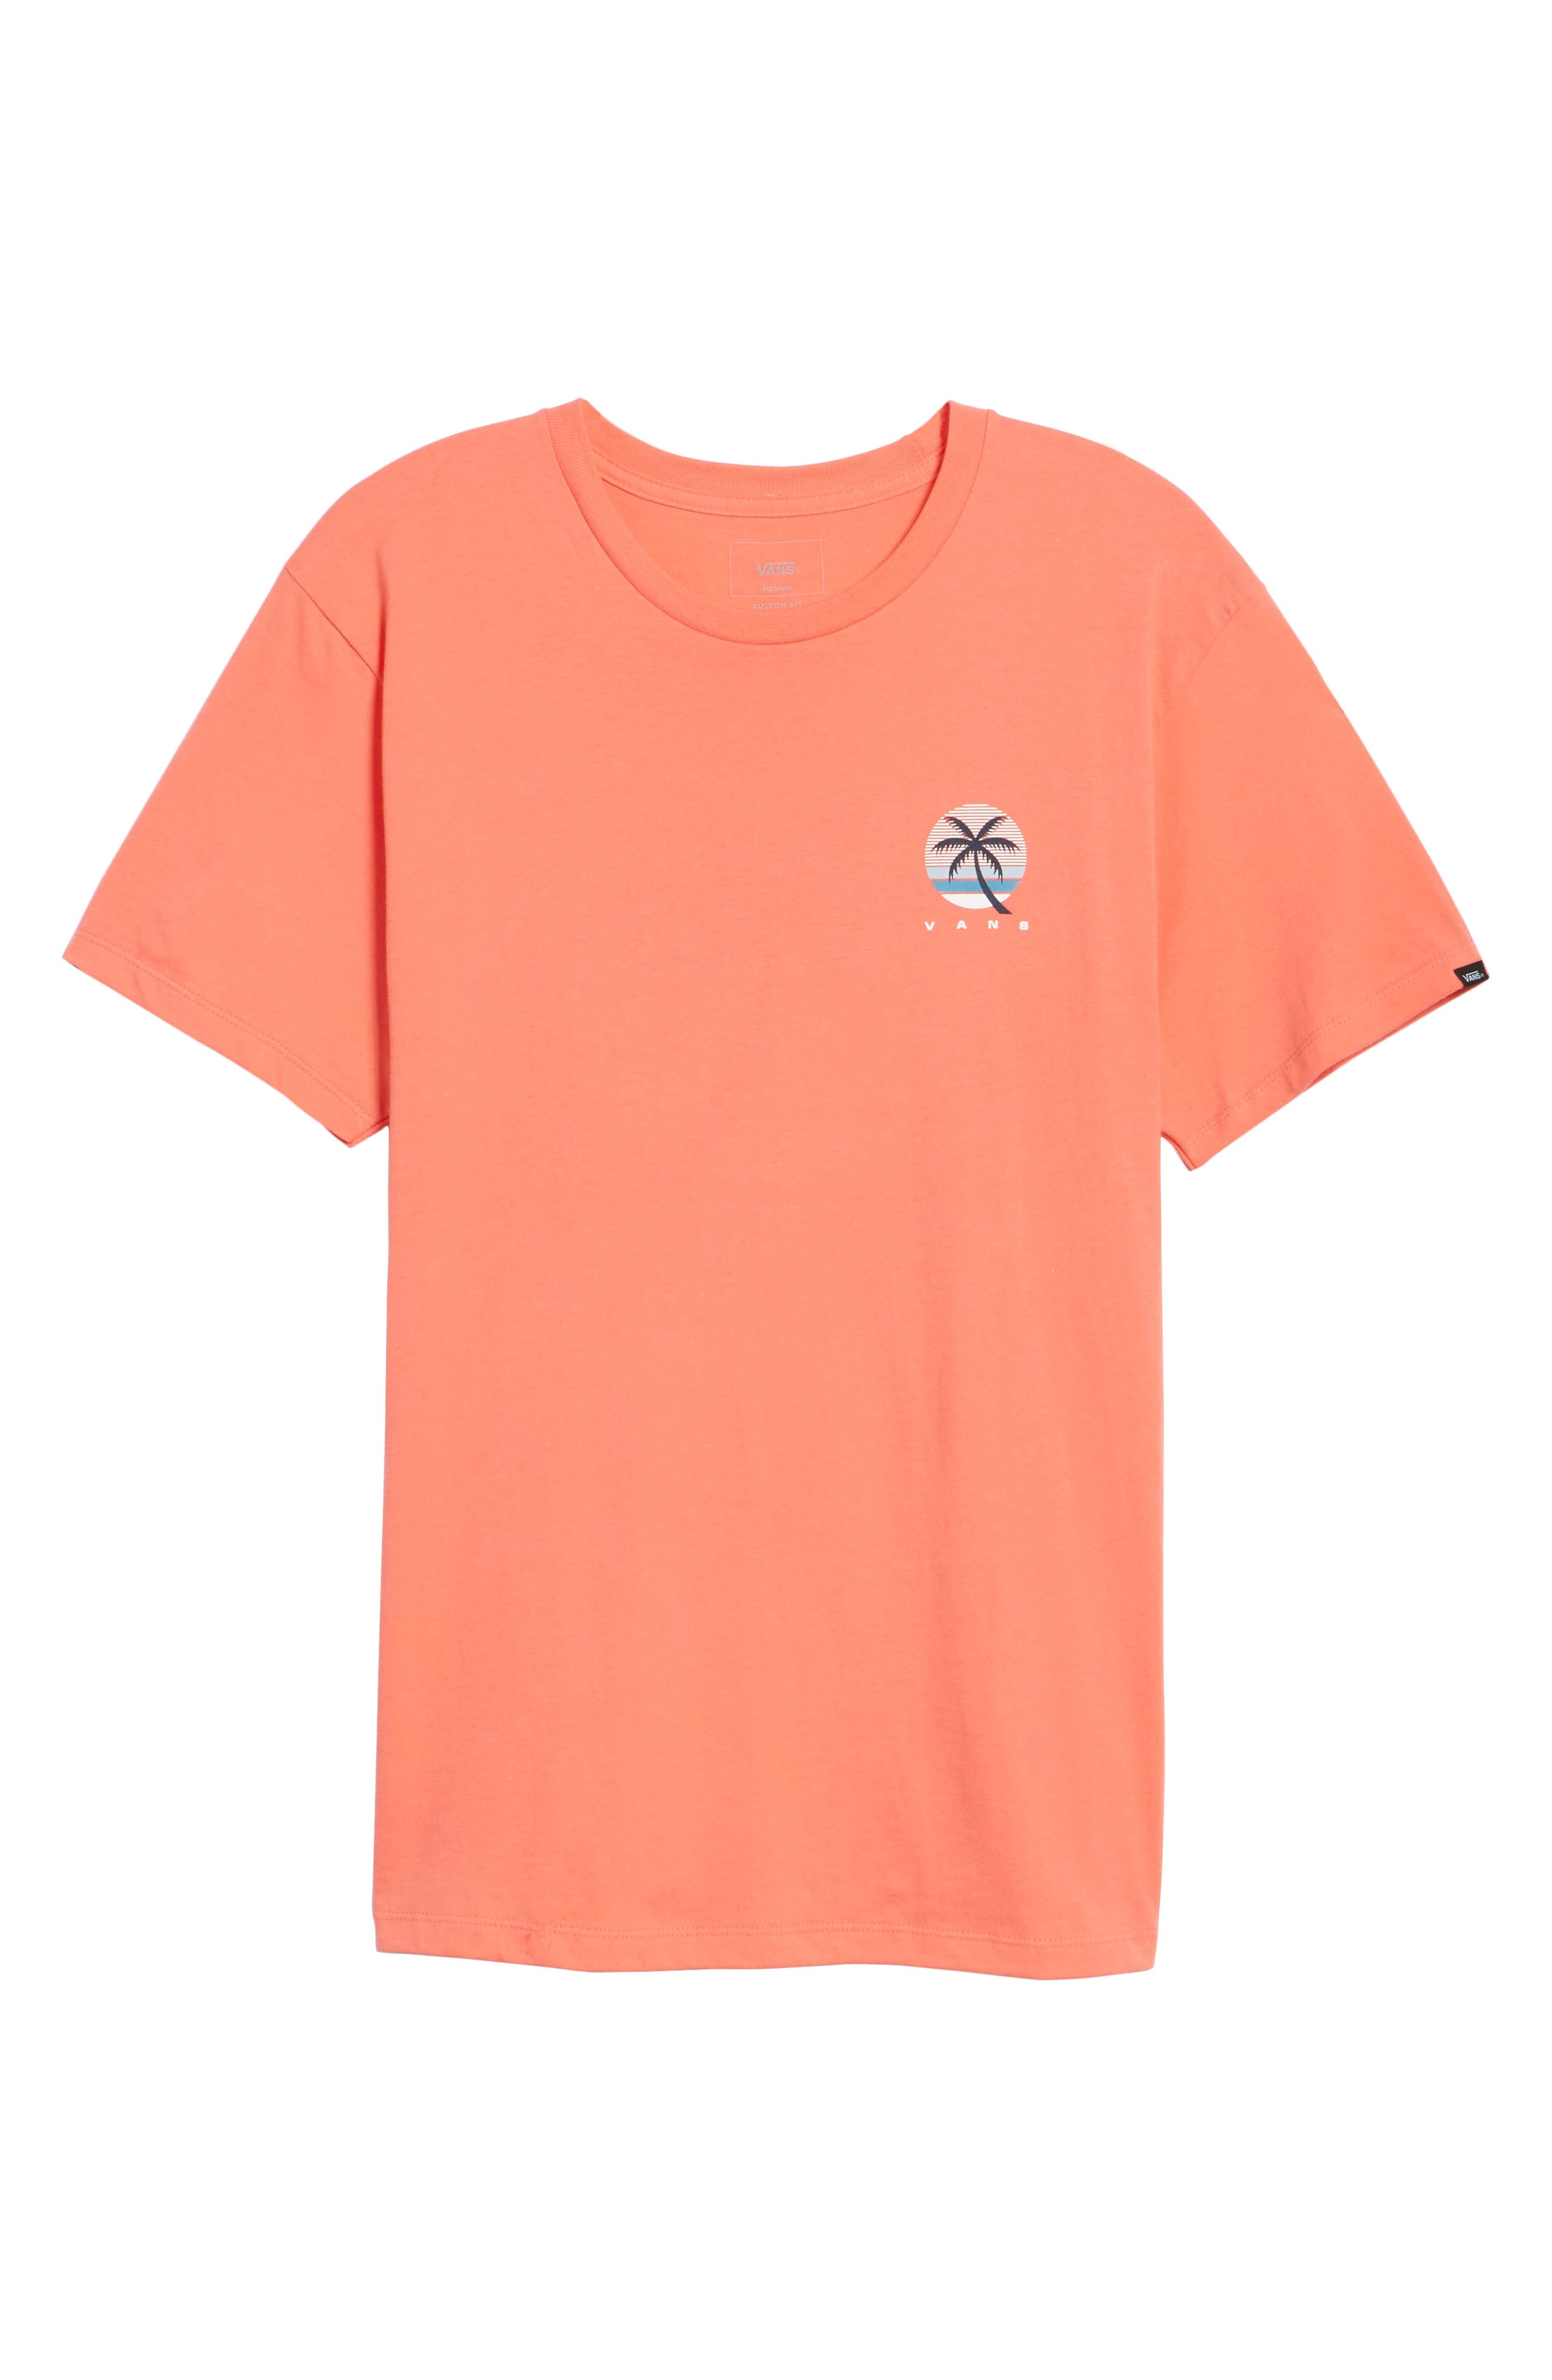 Tall Palms Graphic T-Shirt,                             Alternate thumbnail 6, color,                             950